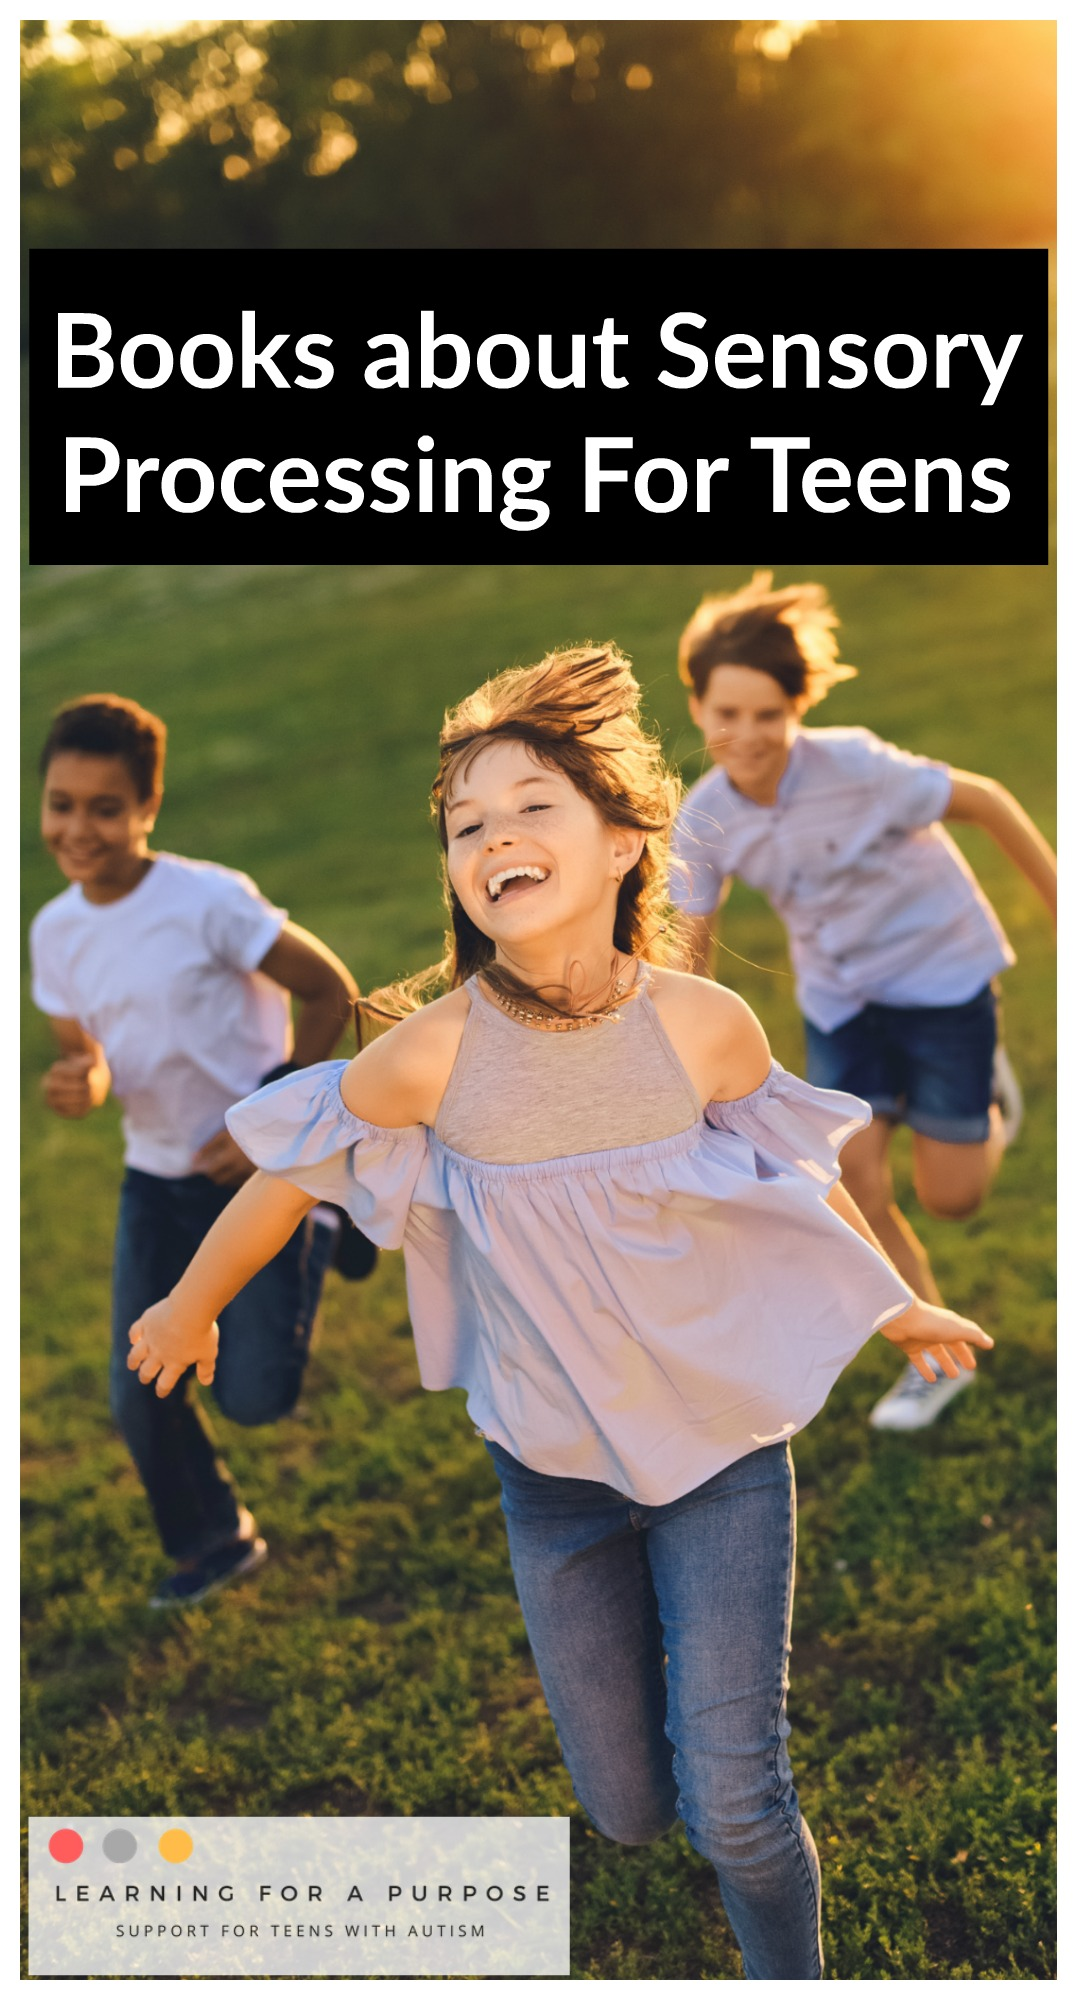 Books about Sensory Processing For Teens #sensory #teens